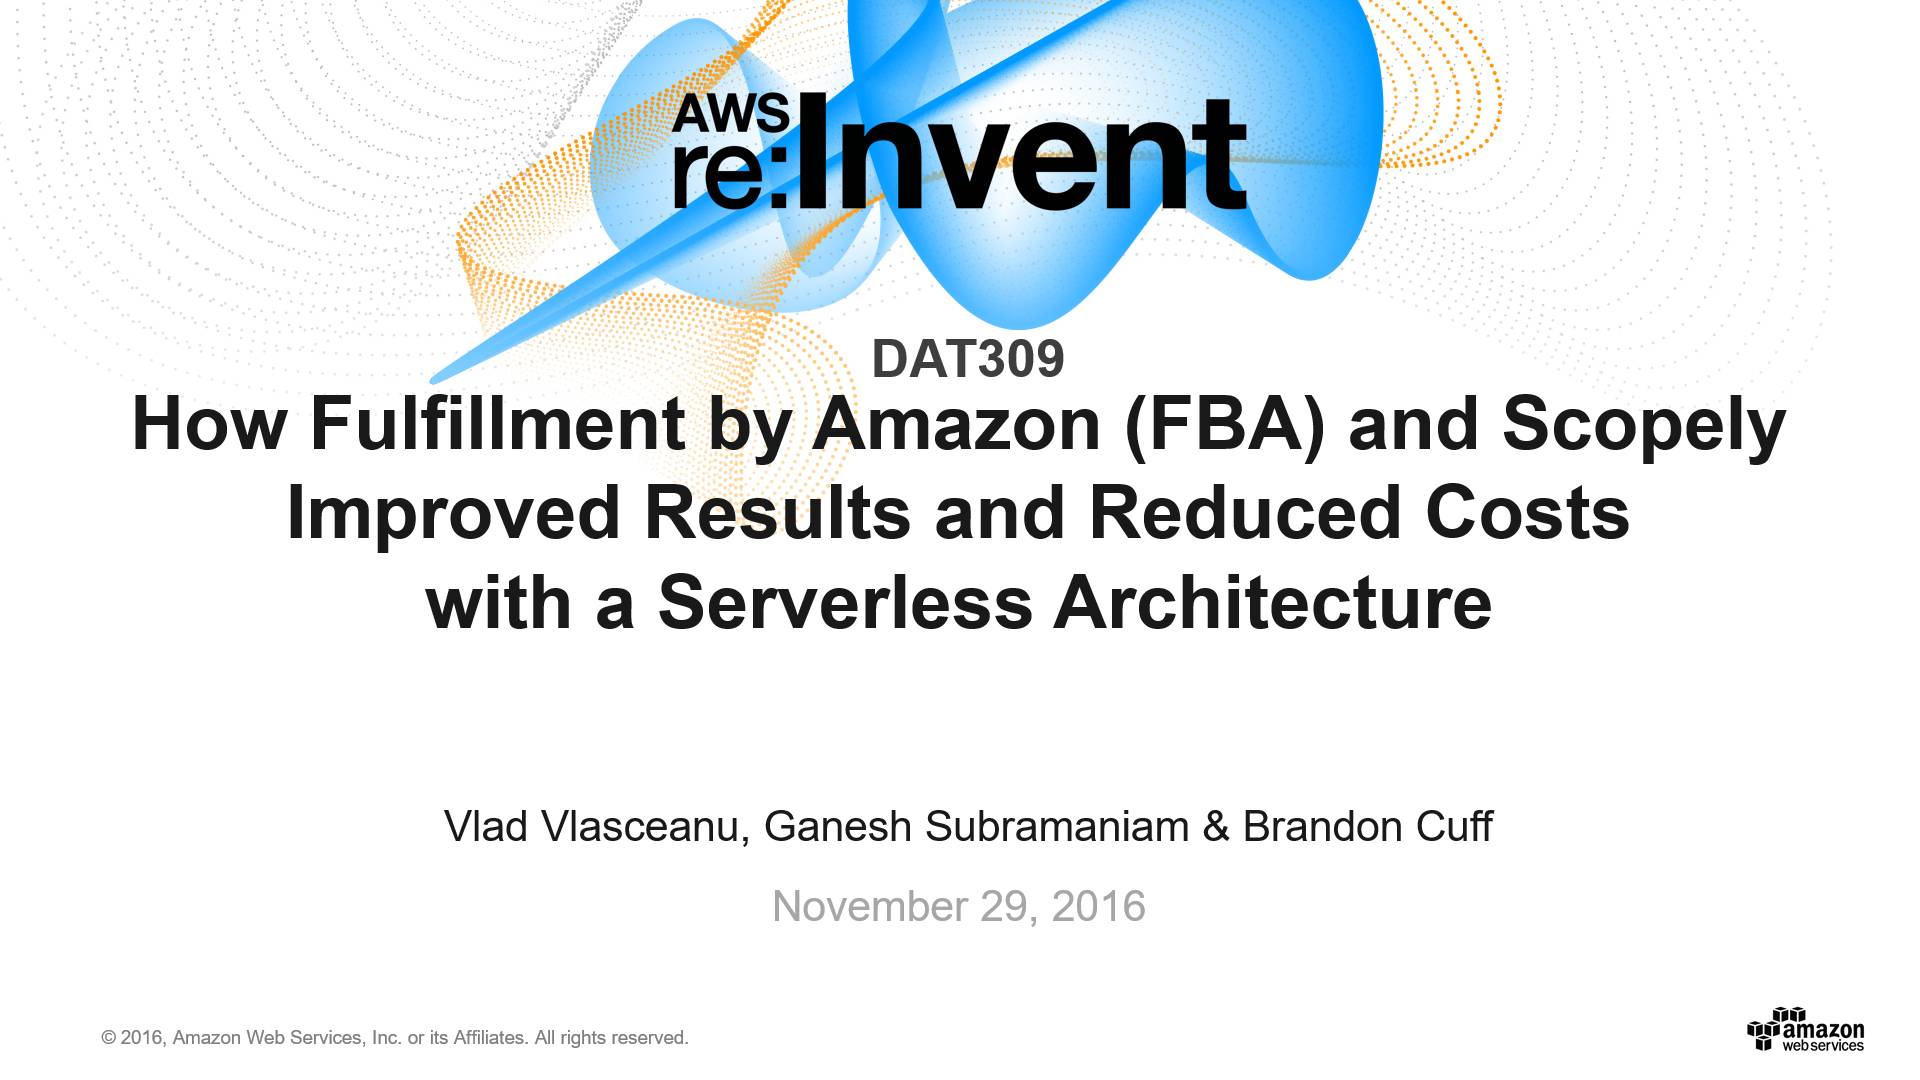 DAT309 How Fulfillment by Amazon (FBA) and Scopely Improved Results and Reduced Costs with a Serverless Architecture